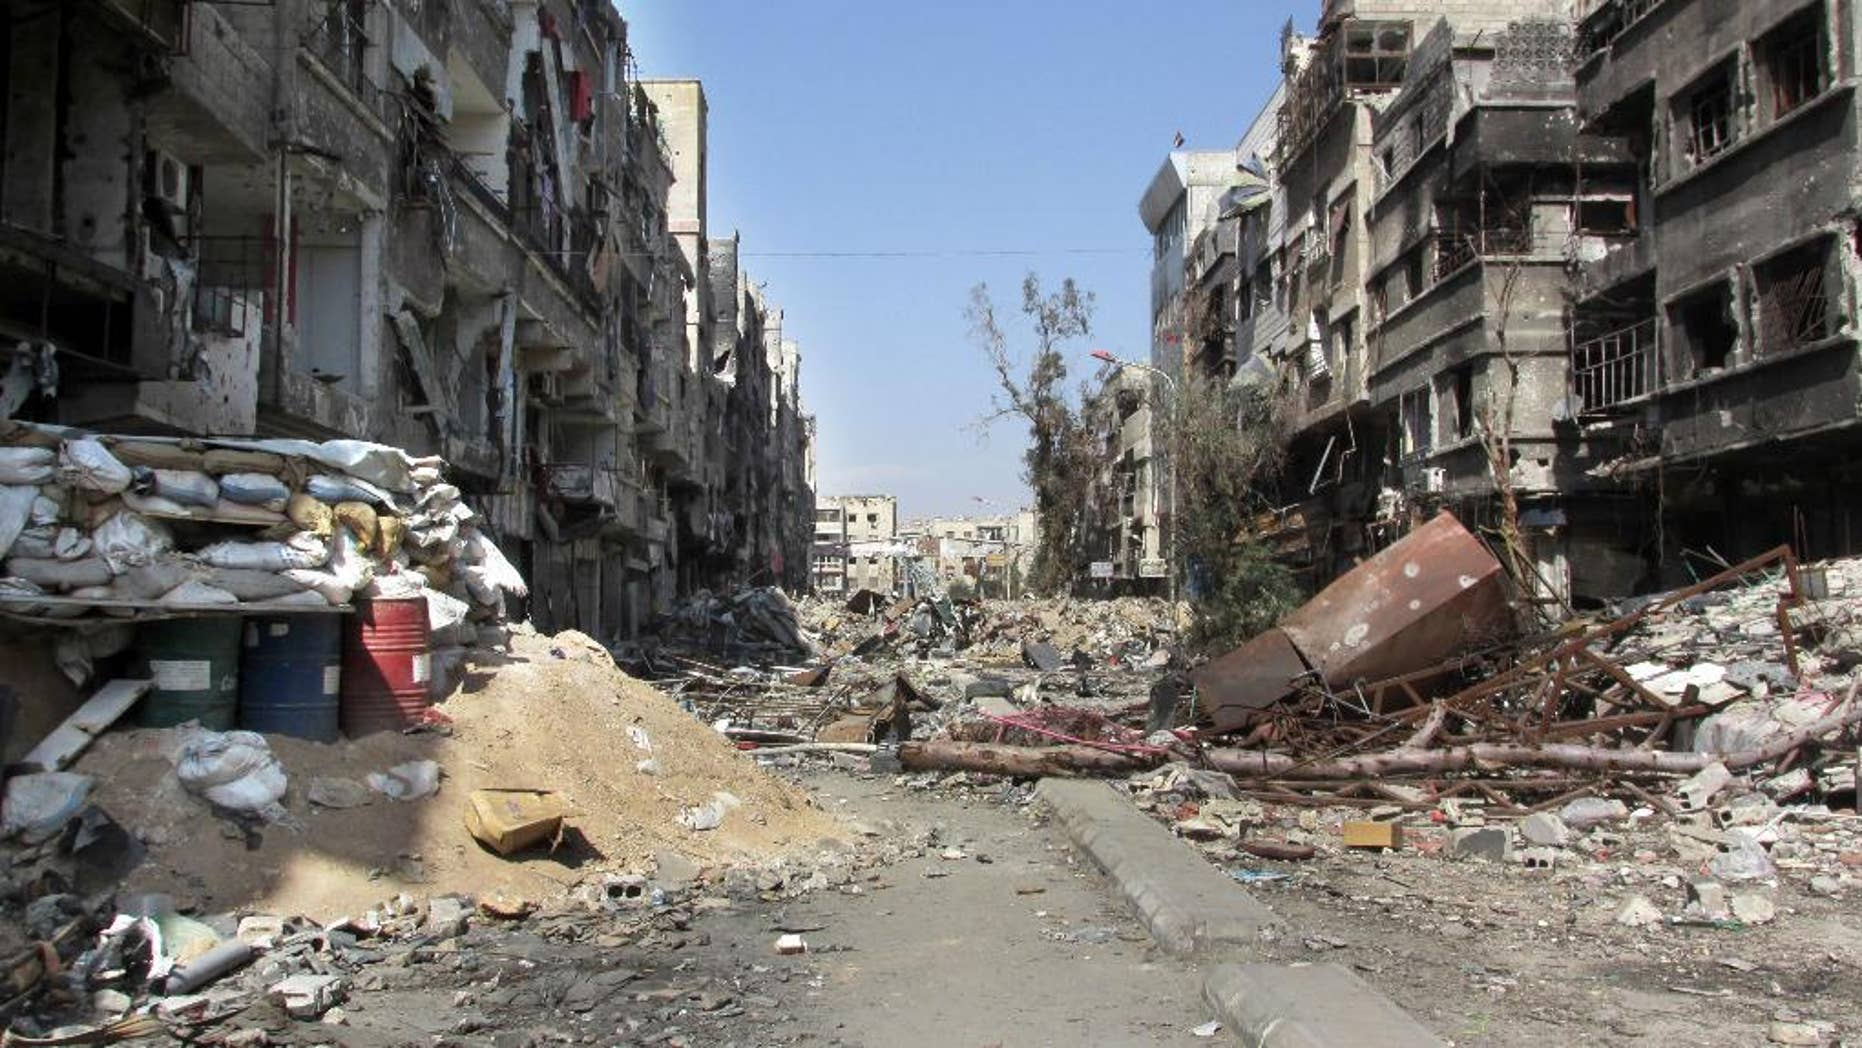 This picture taken on Monday Feb. 24, 2014, and released by the United Nations Relief and Works Agency for Palestine Refugees in the Near East (UNRWA), shows damage and debris on  one of the main streets of the besieged Palestinian camp of Yarmouk, in Damascus, Syria. U.N. Secretary General Ban Ki-Moon urged Syrian government to authorize more humanitarian staff to work inside the country, devastated by its 3-year-old conflict. (AP Photo/UNRWA)